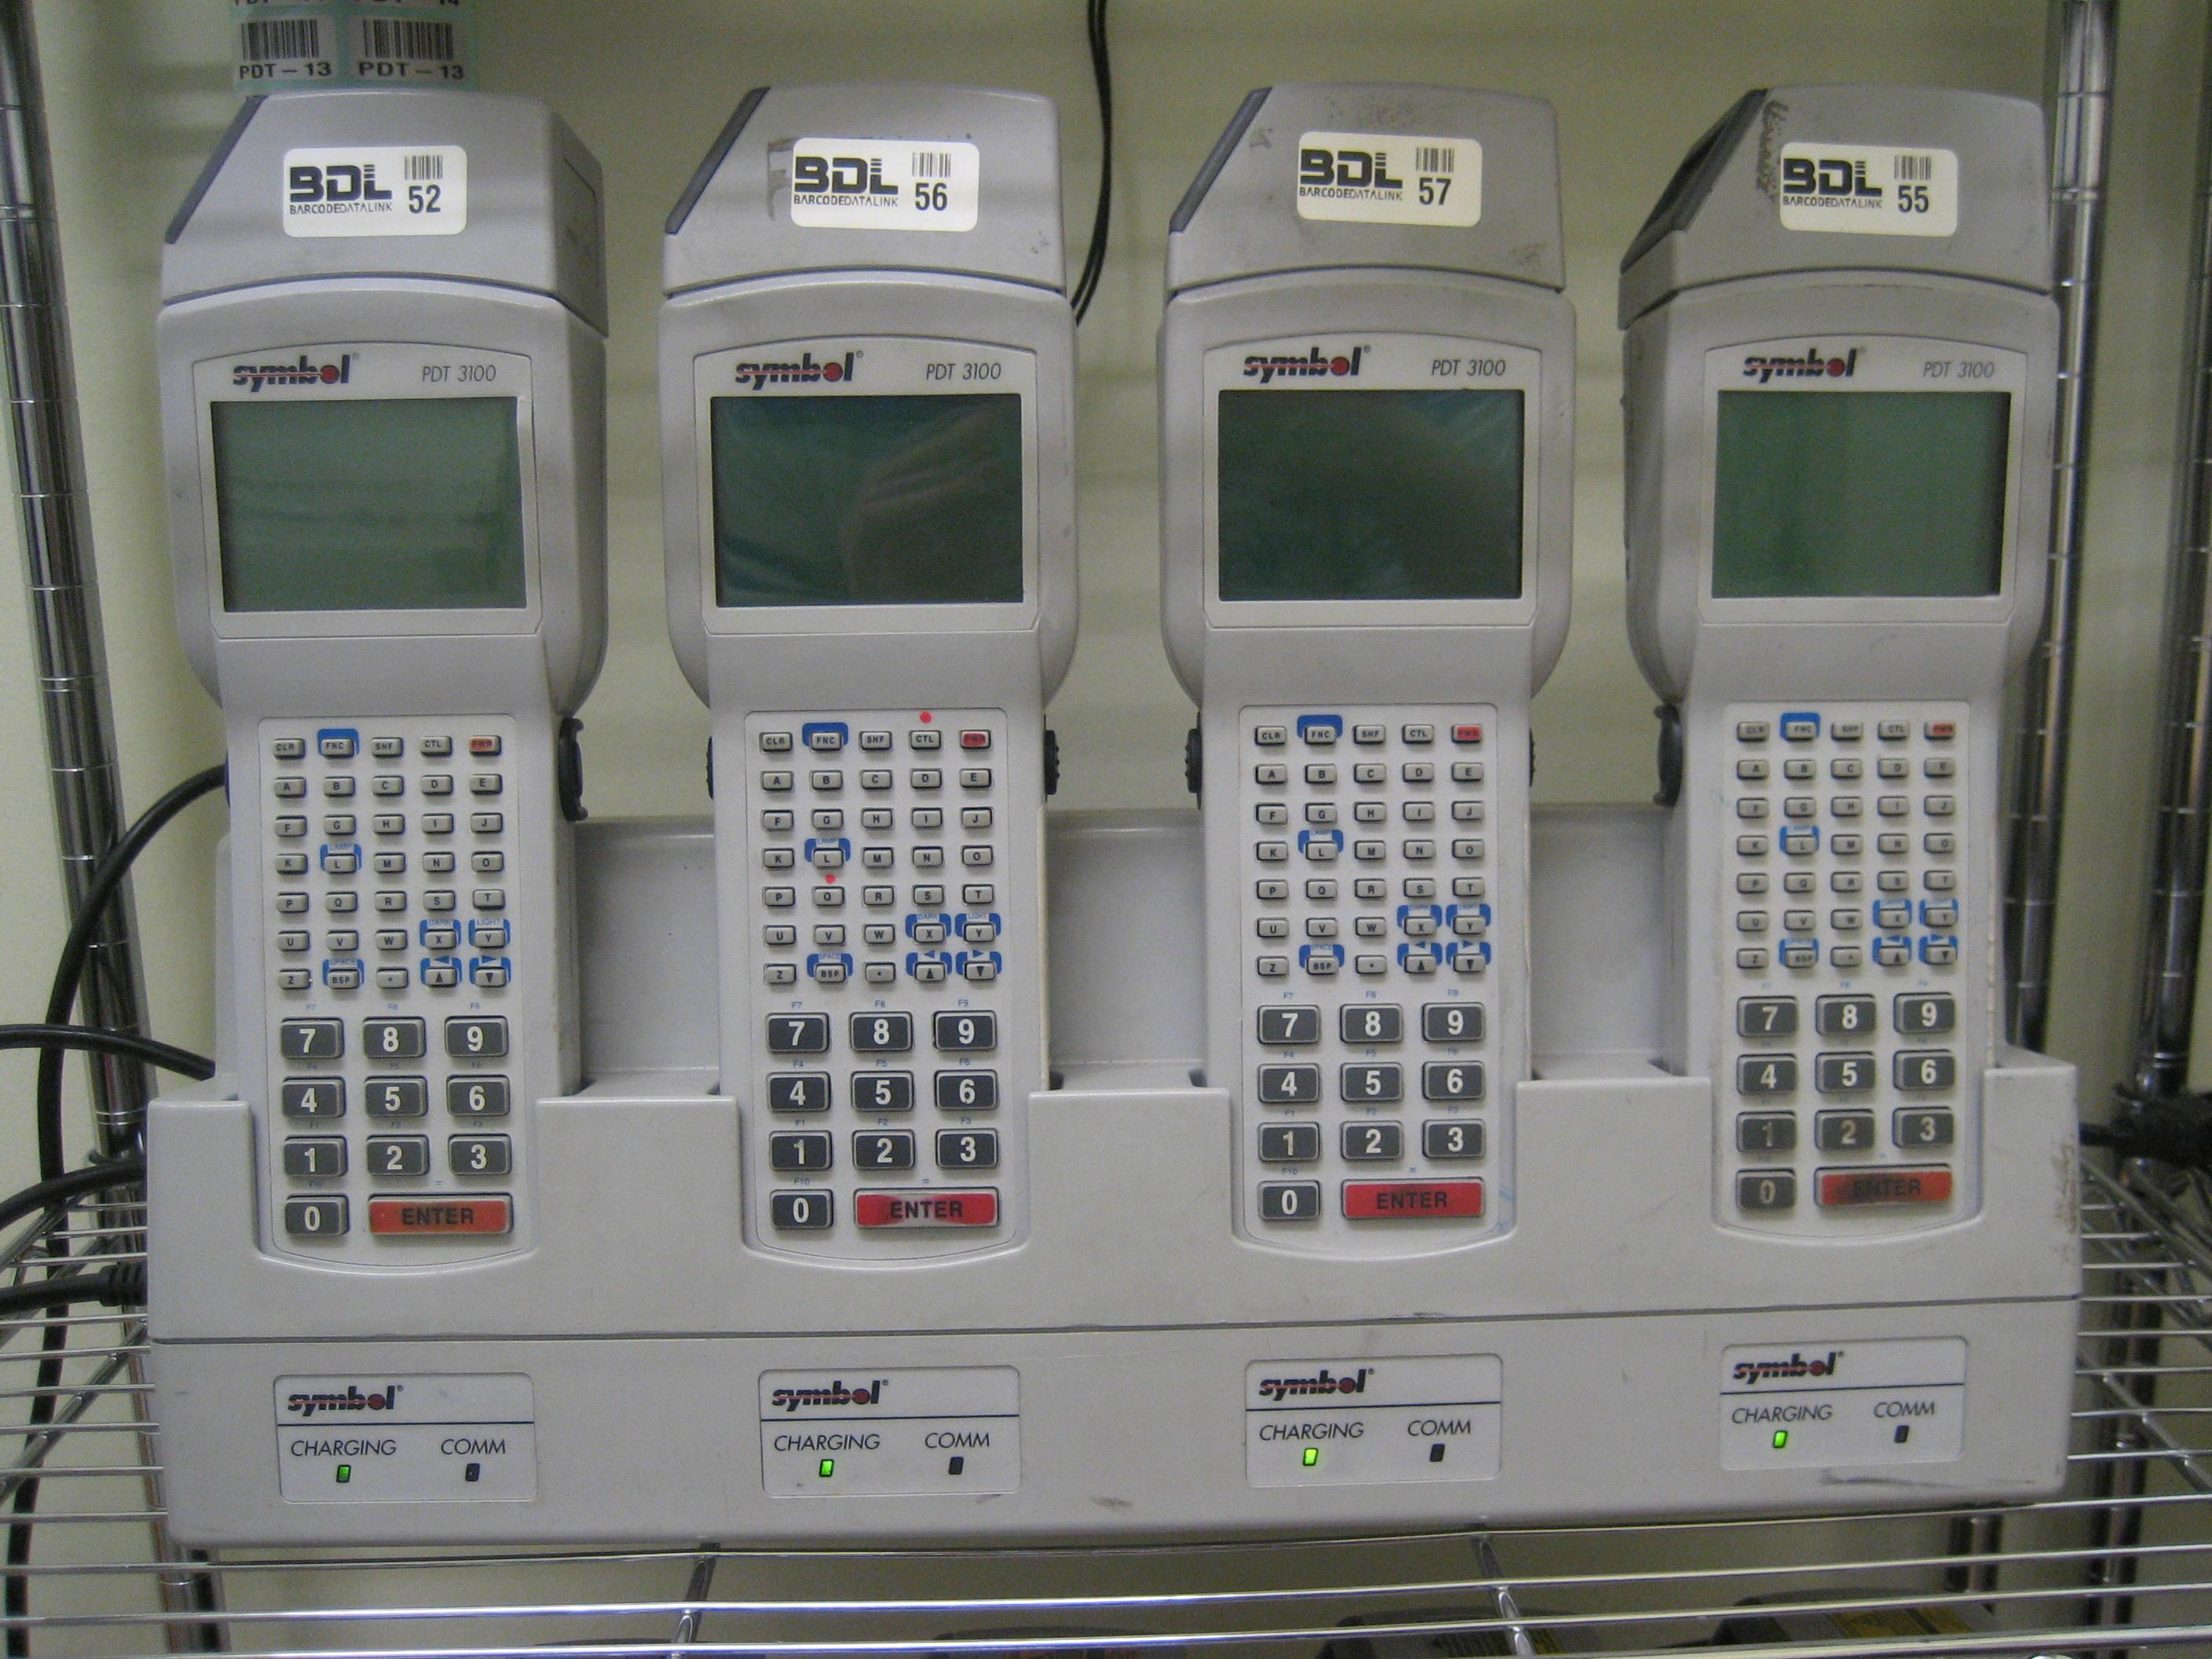 The Symbol PDT-3100 batch DOS based terminal. Still popular for simple data collection applications such as stocktaking. Available with 4 slot cradles and spare batteries.